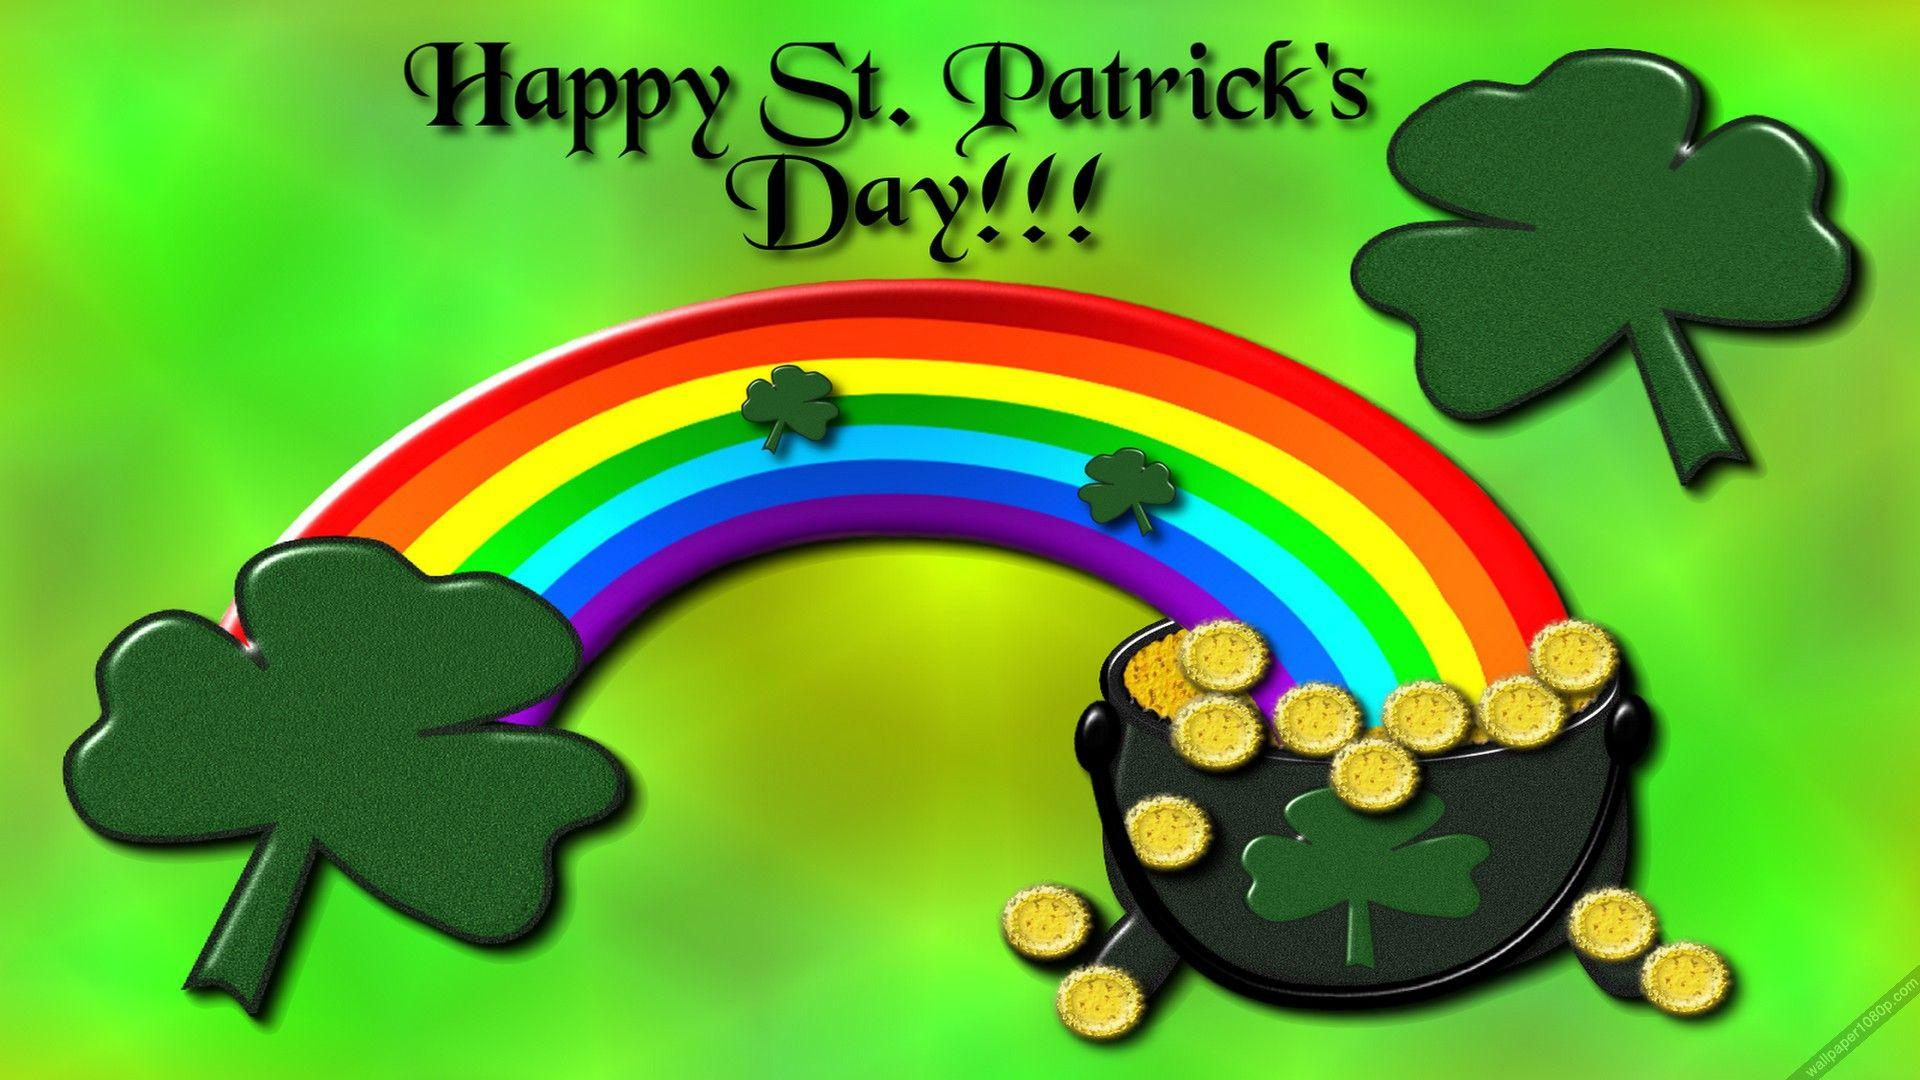 10 Saint Patrick&Day 2014 HD Wallpapers